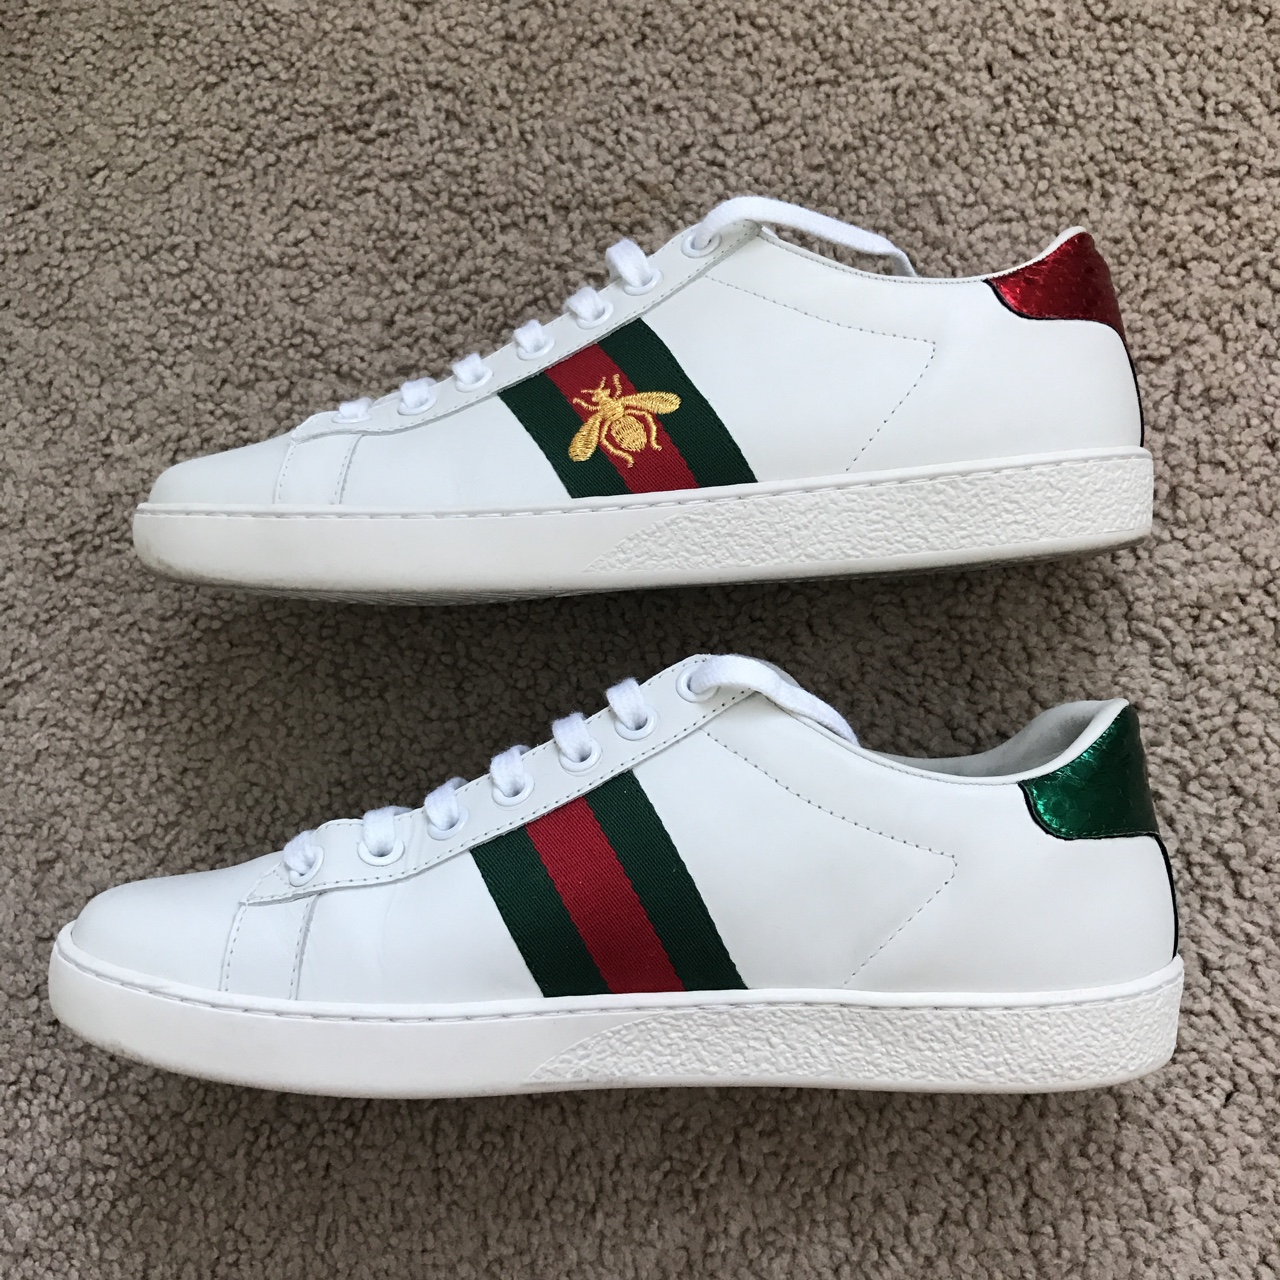 Gucci Ace Sneakers - perfect condition